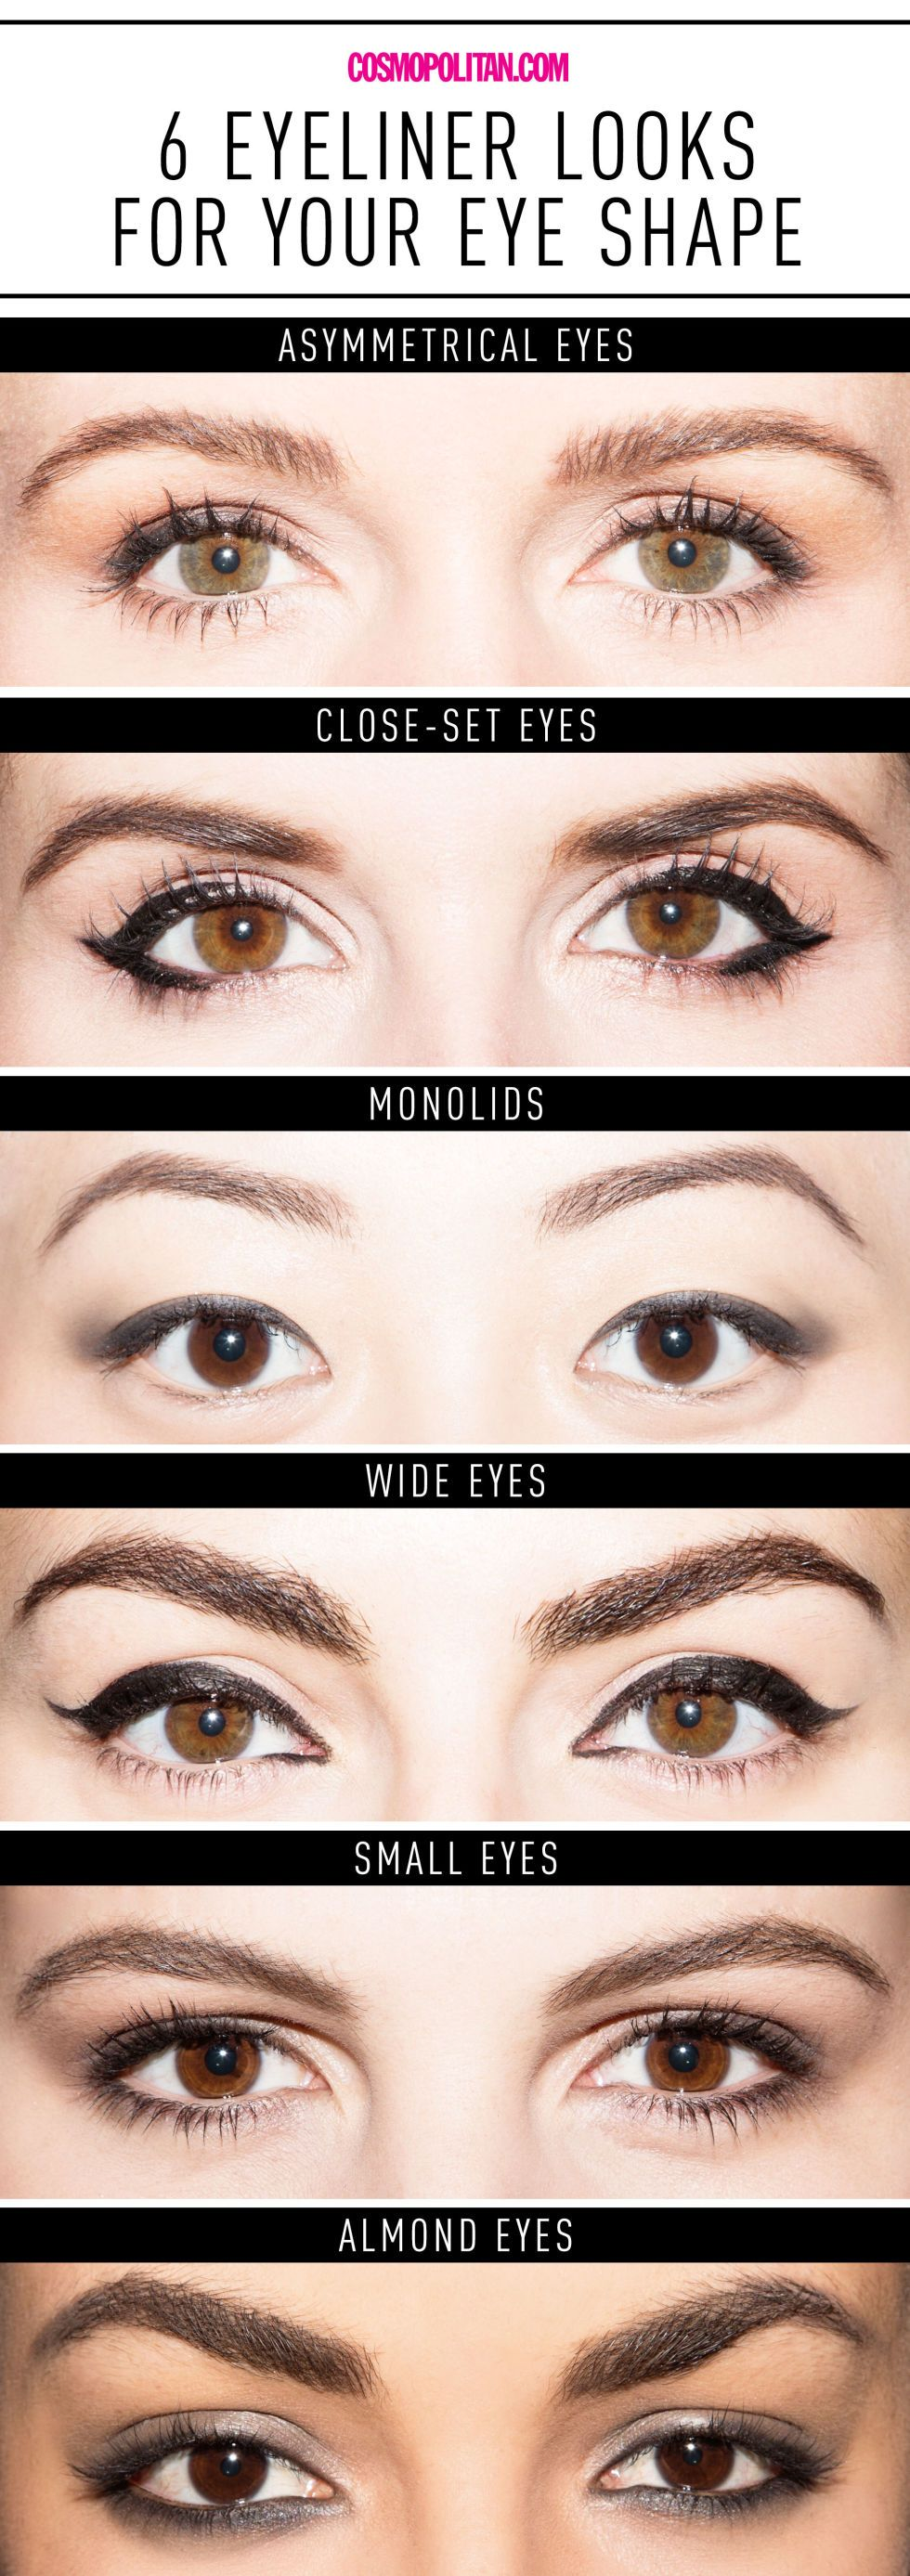 6 Ways To Get The Perfect Eyeliner Look For Your Eye Shape In 1